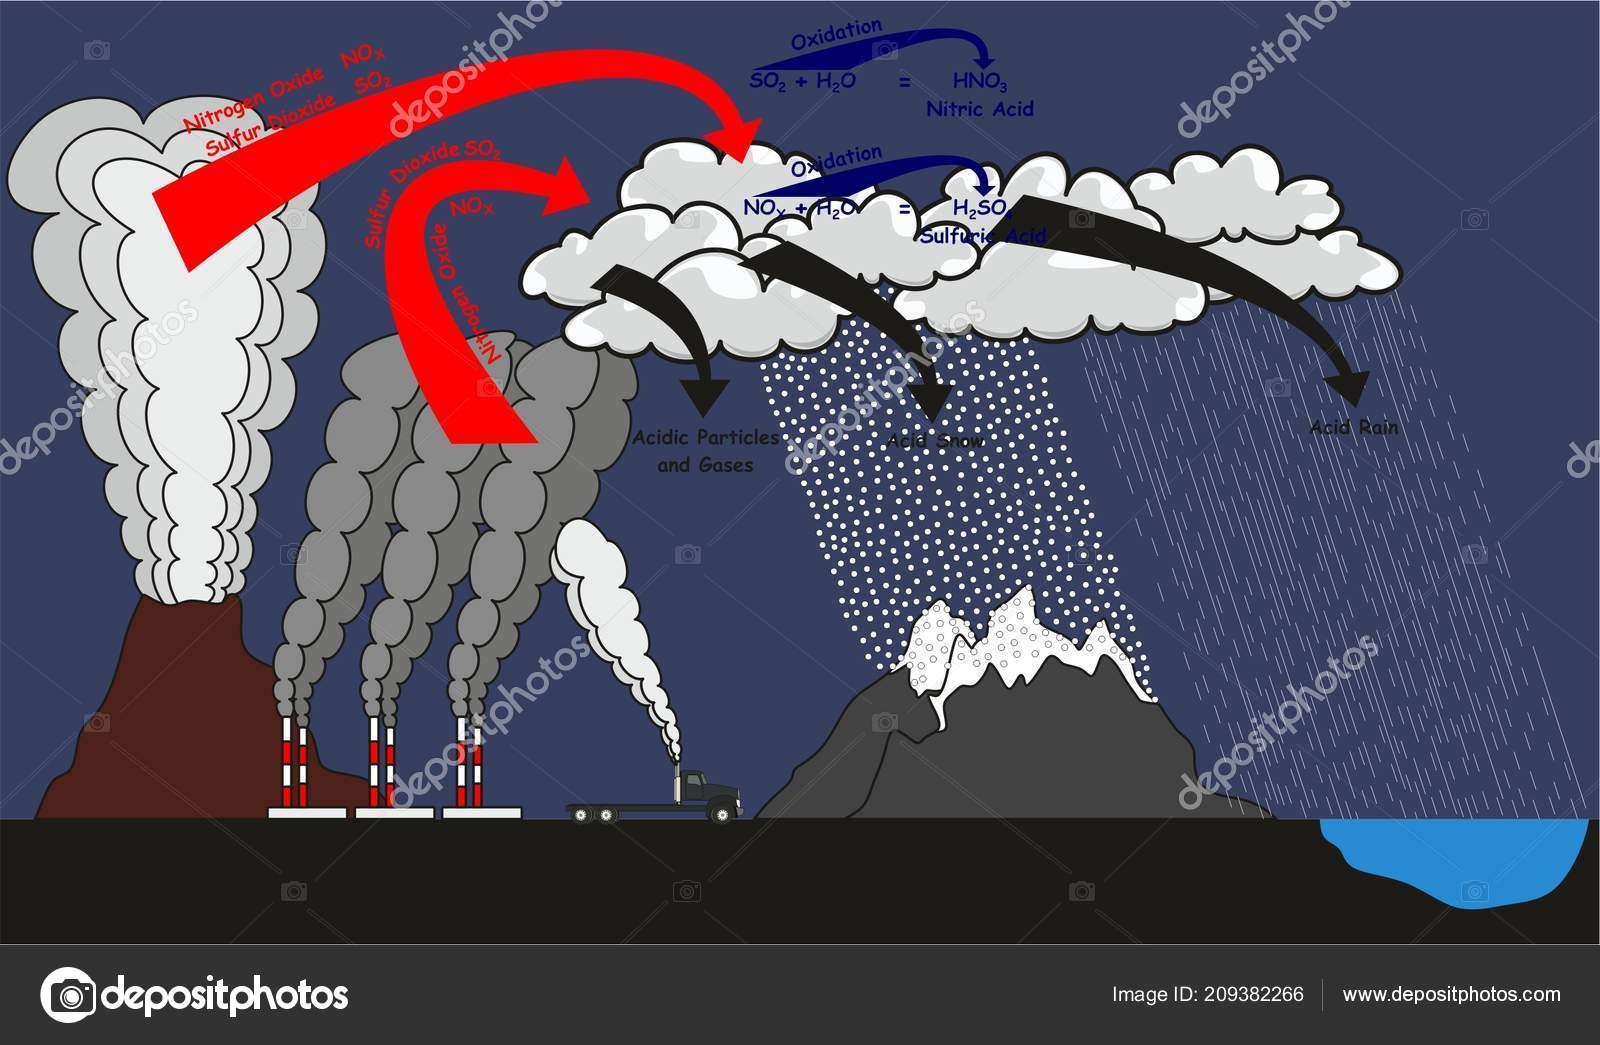 hight resolution of acid rain infographic diagram showing natural and human effects that cause it and produce sulfur dioxide nitrogen oxide which go in oxidation reaction with